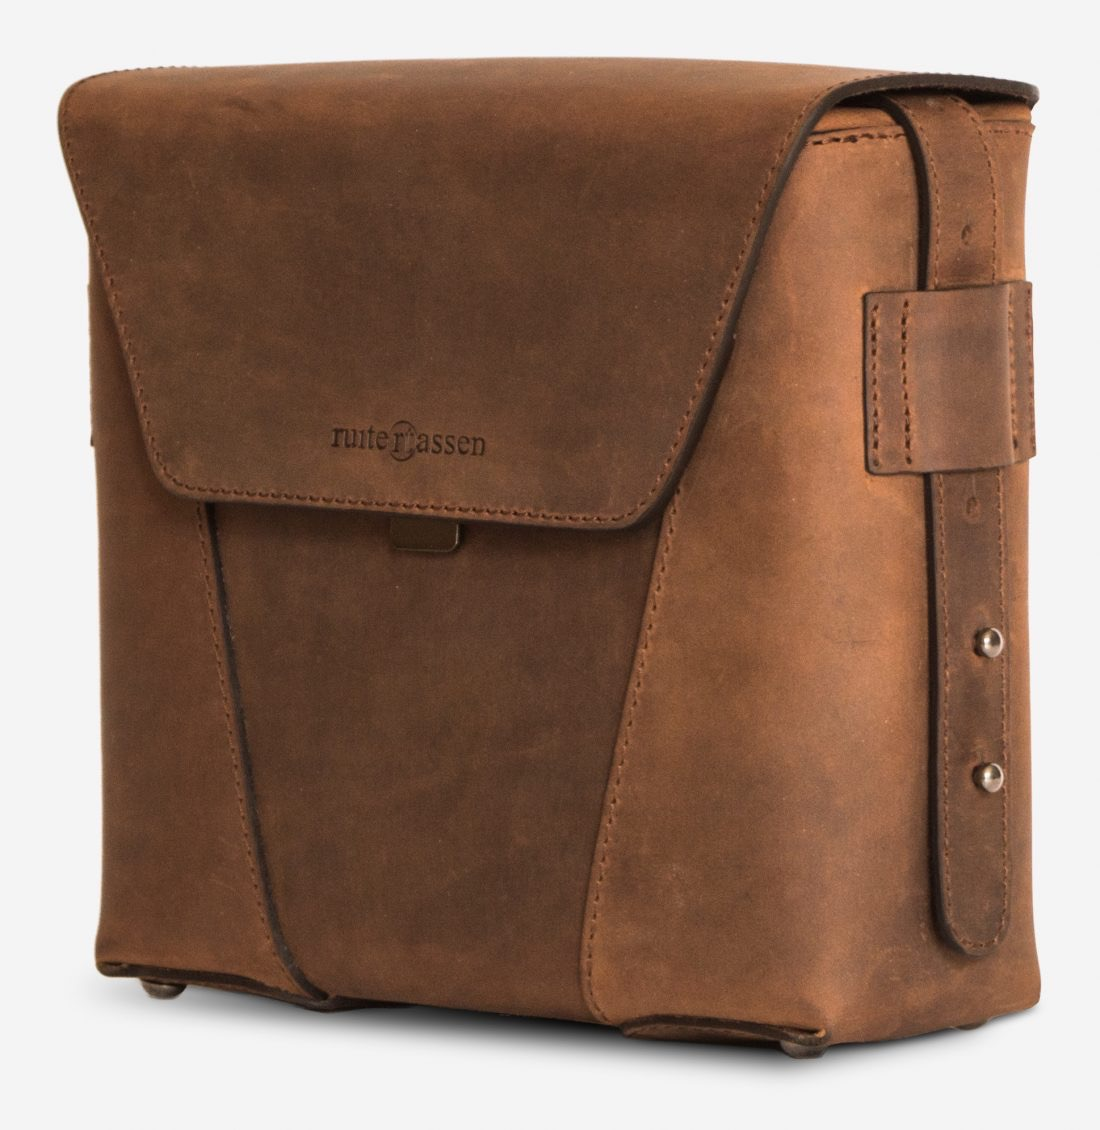 Side view of the small vegetable-tanned brown leather crossbody bag for men.